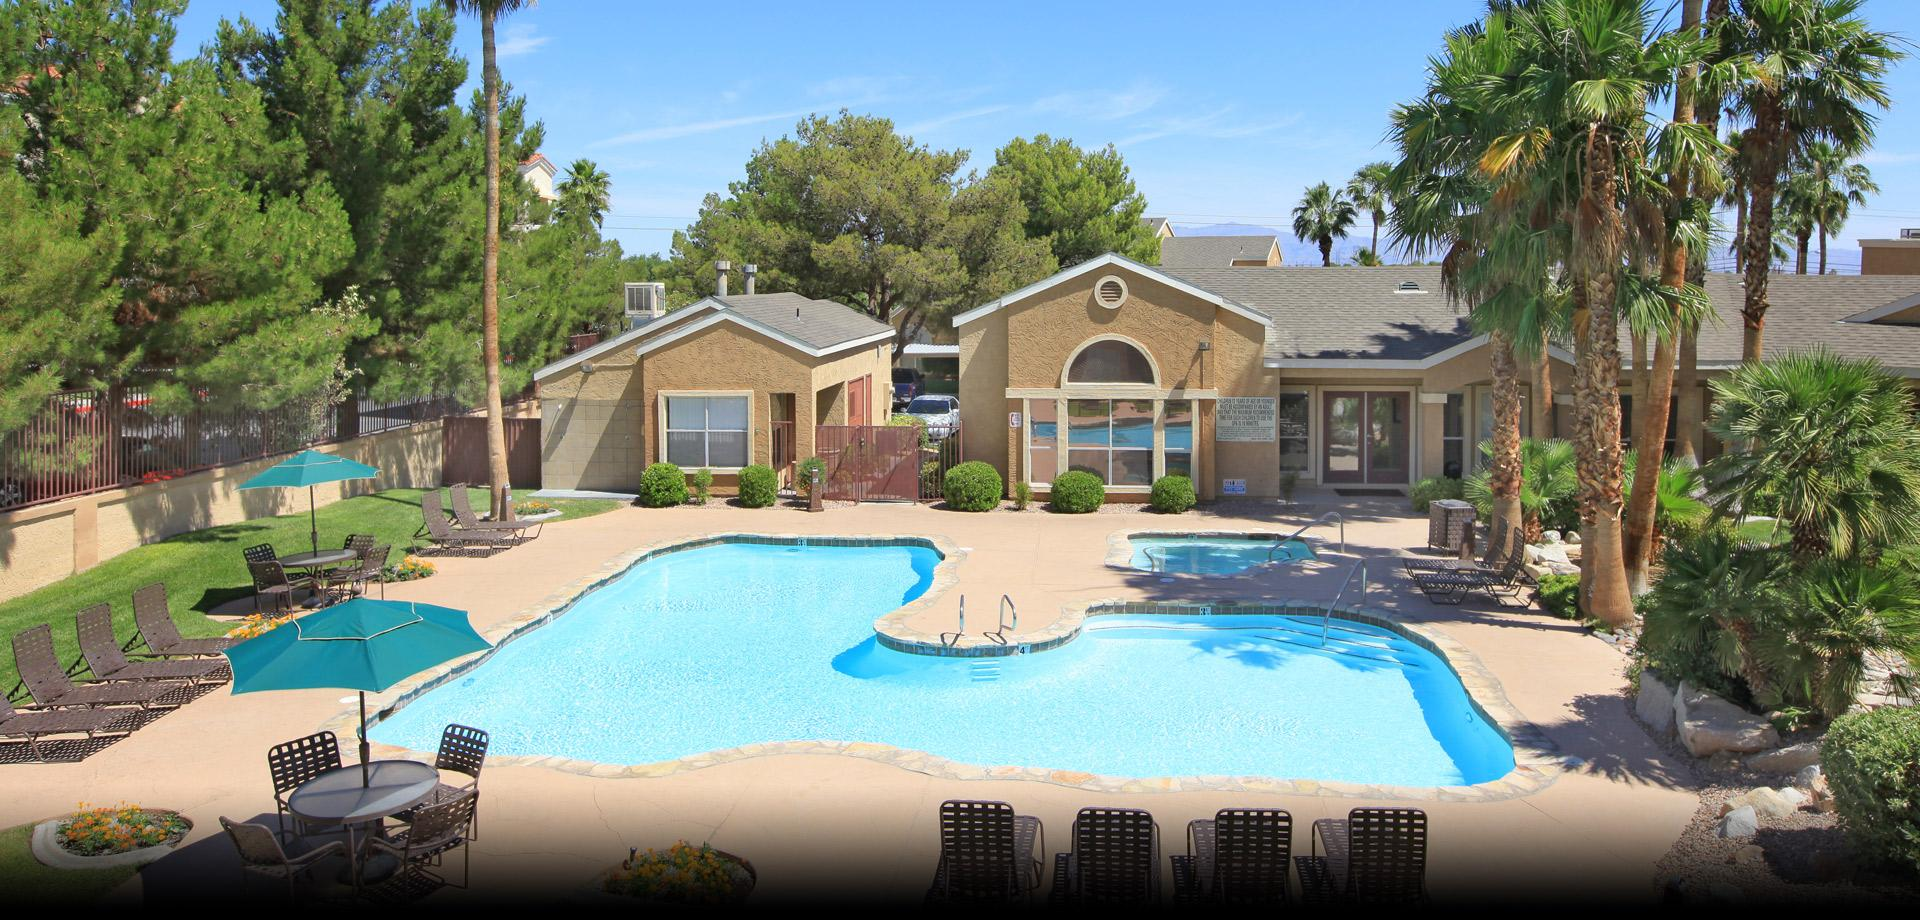 Poolside Sundeck And Grilling Area At Renaissance Villas Apartment Homes,  Nevada, 89103